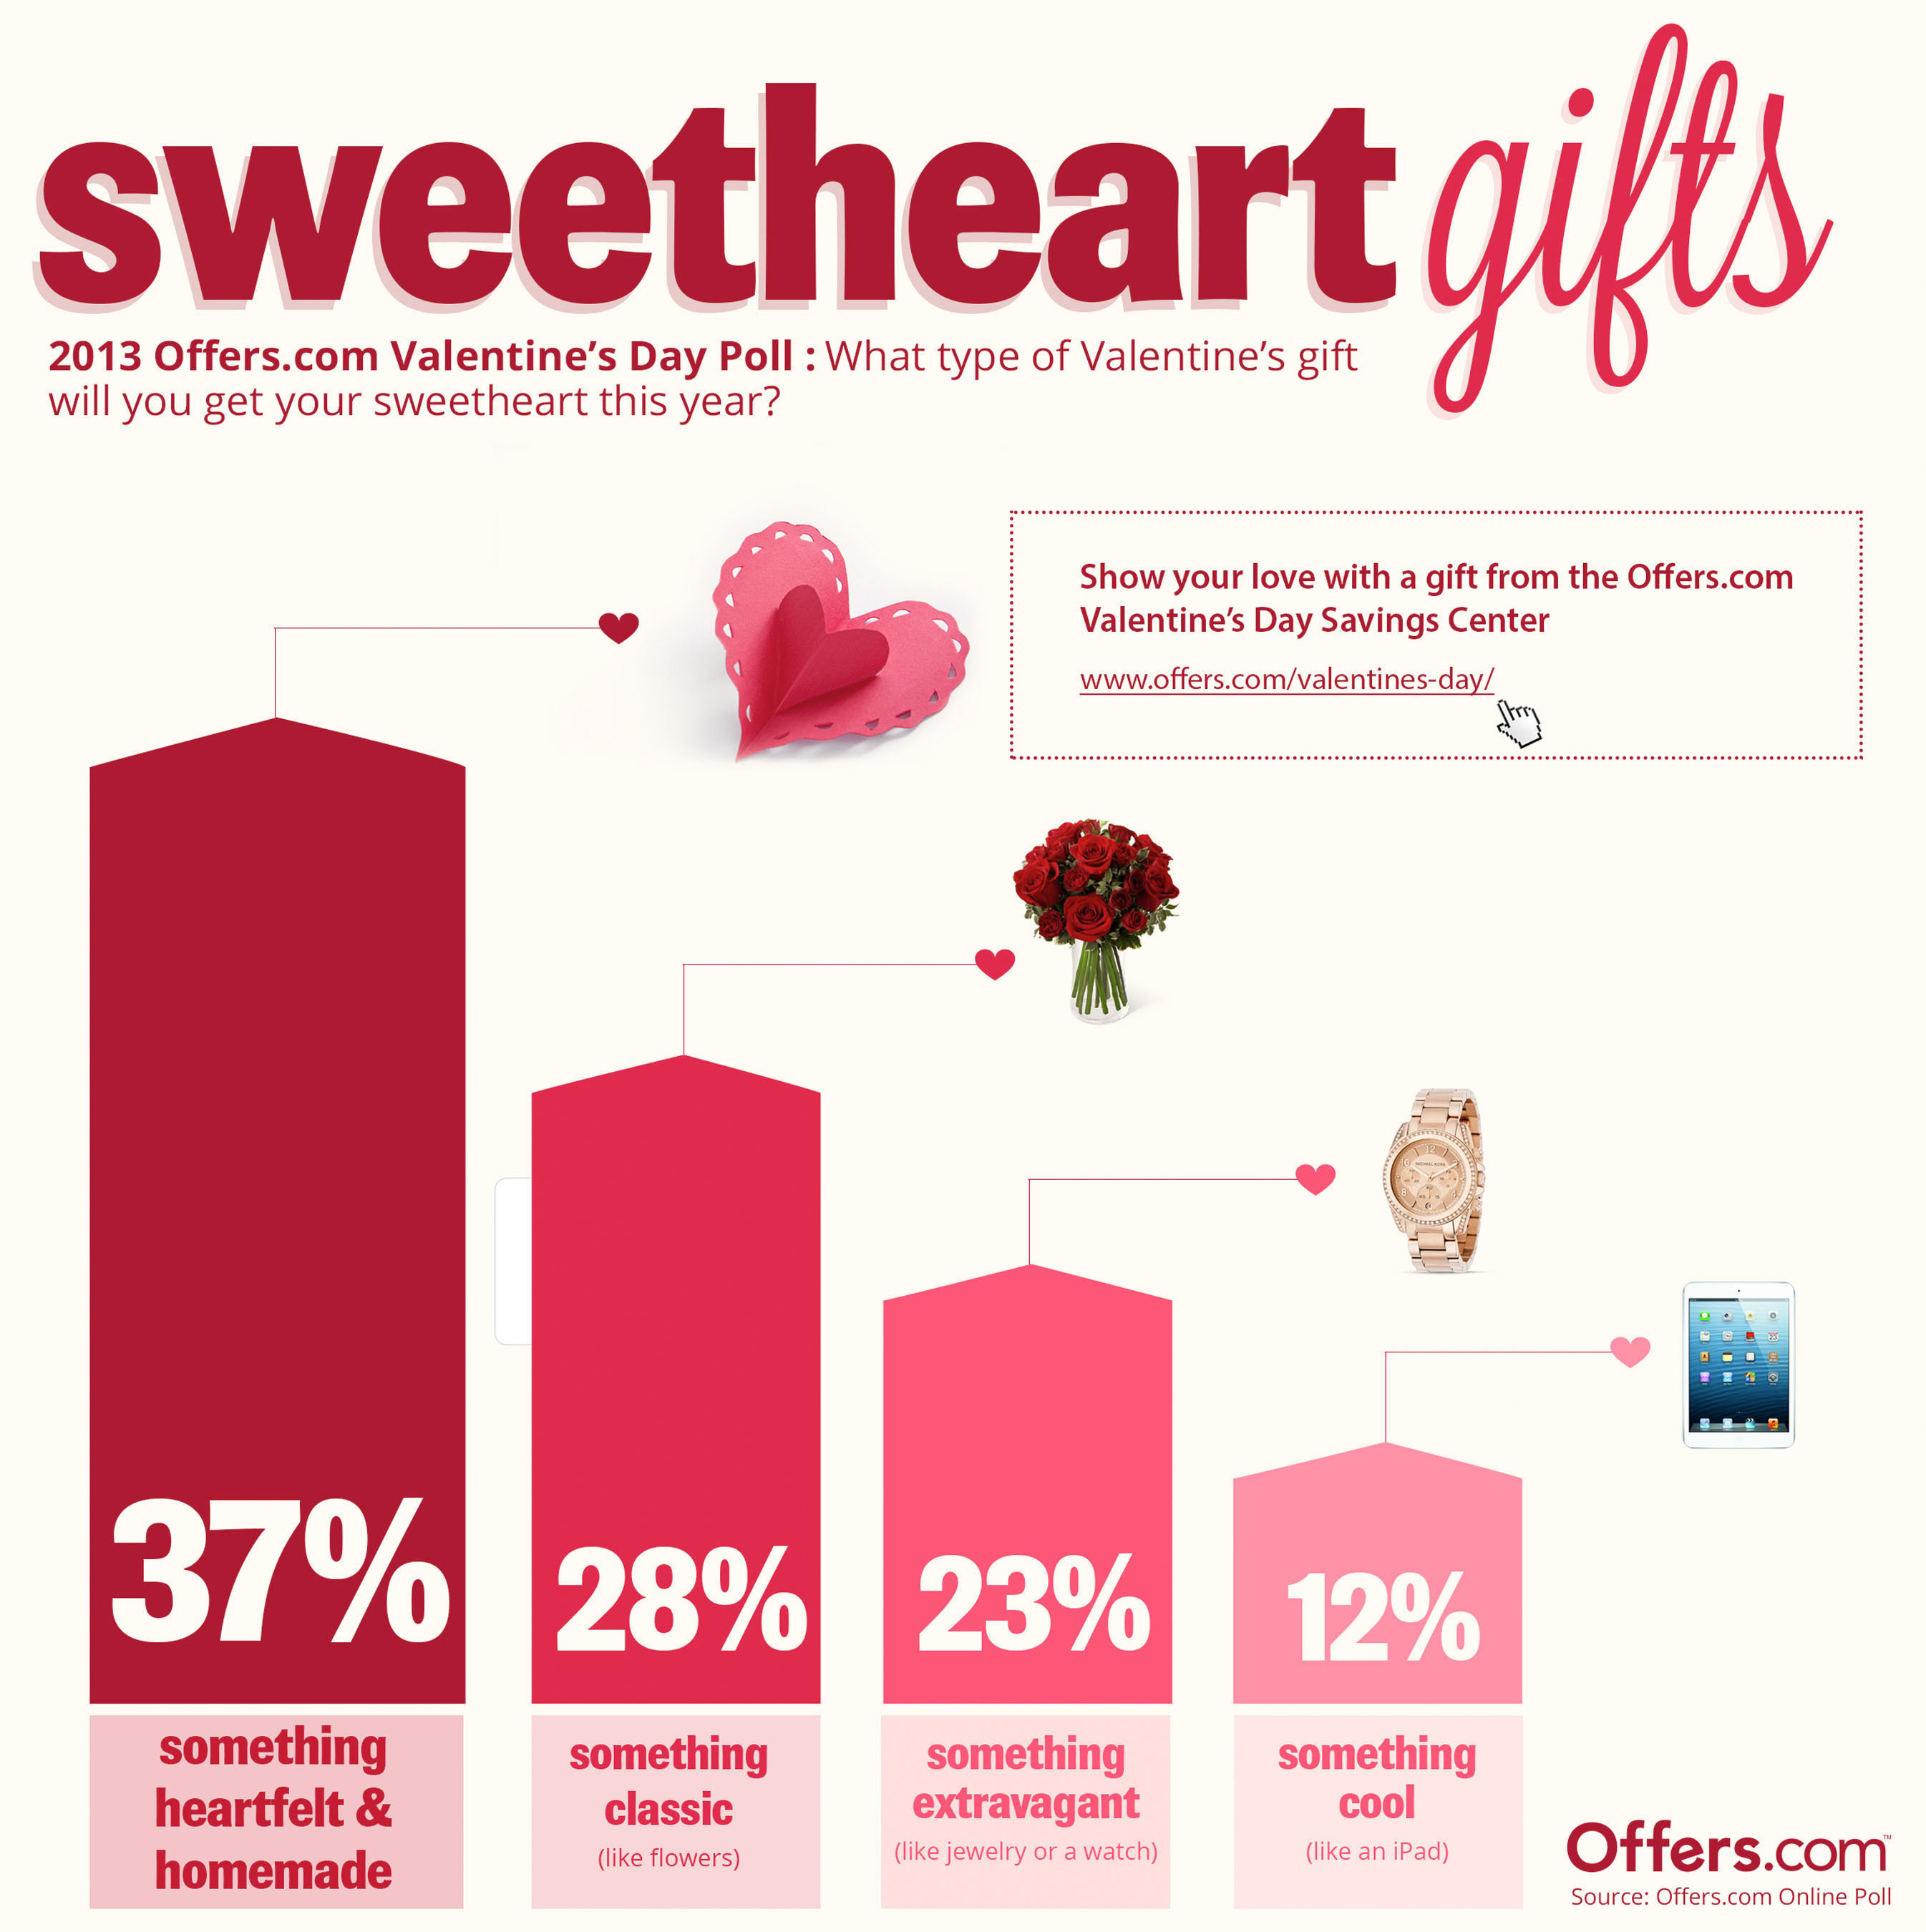 Offers.com Valentine's Day Gift Poll.  (PRNewsFoto/Offers.com)